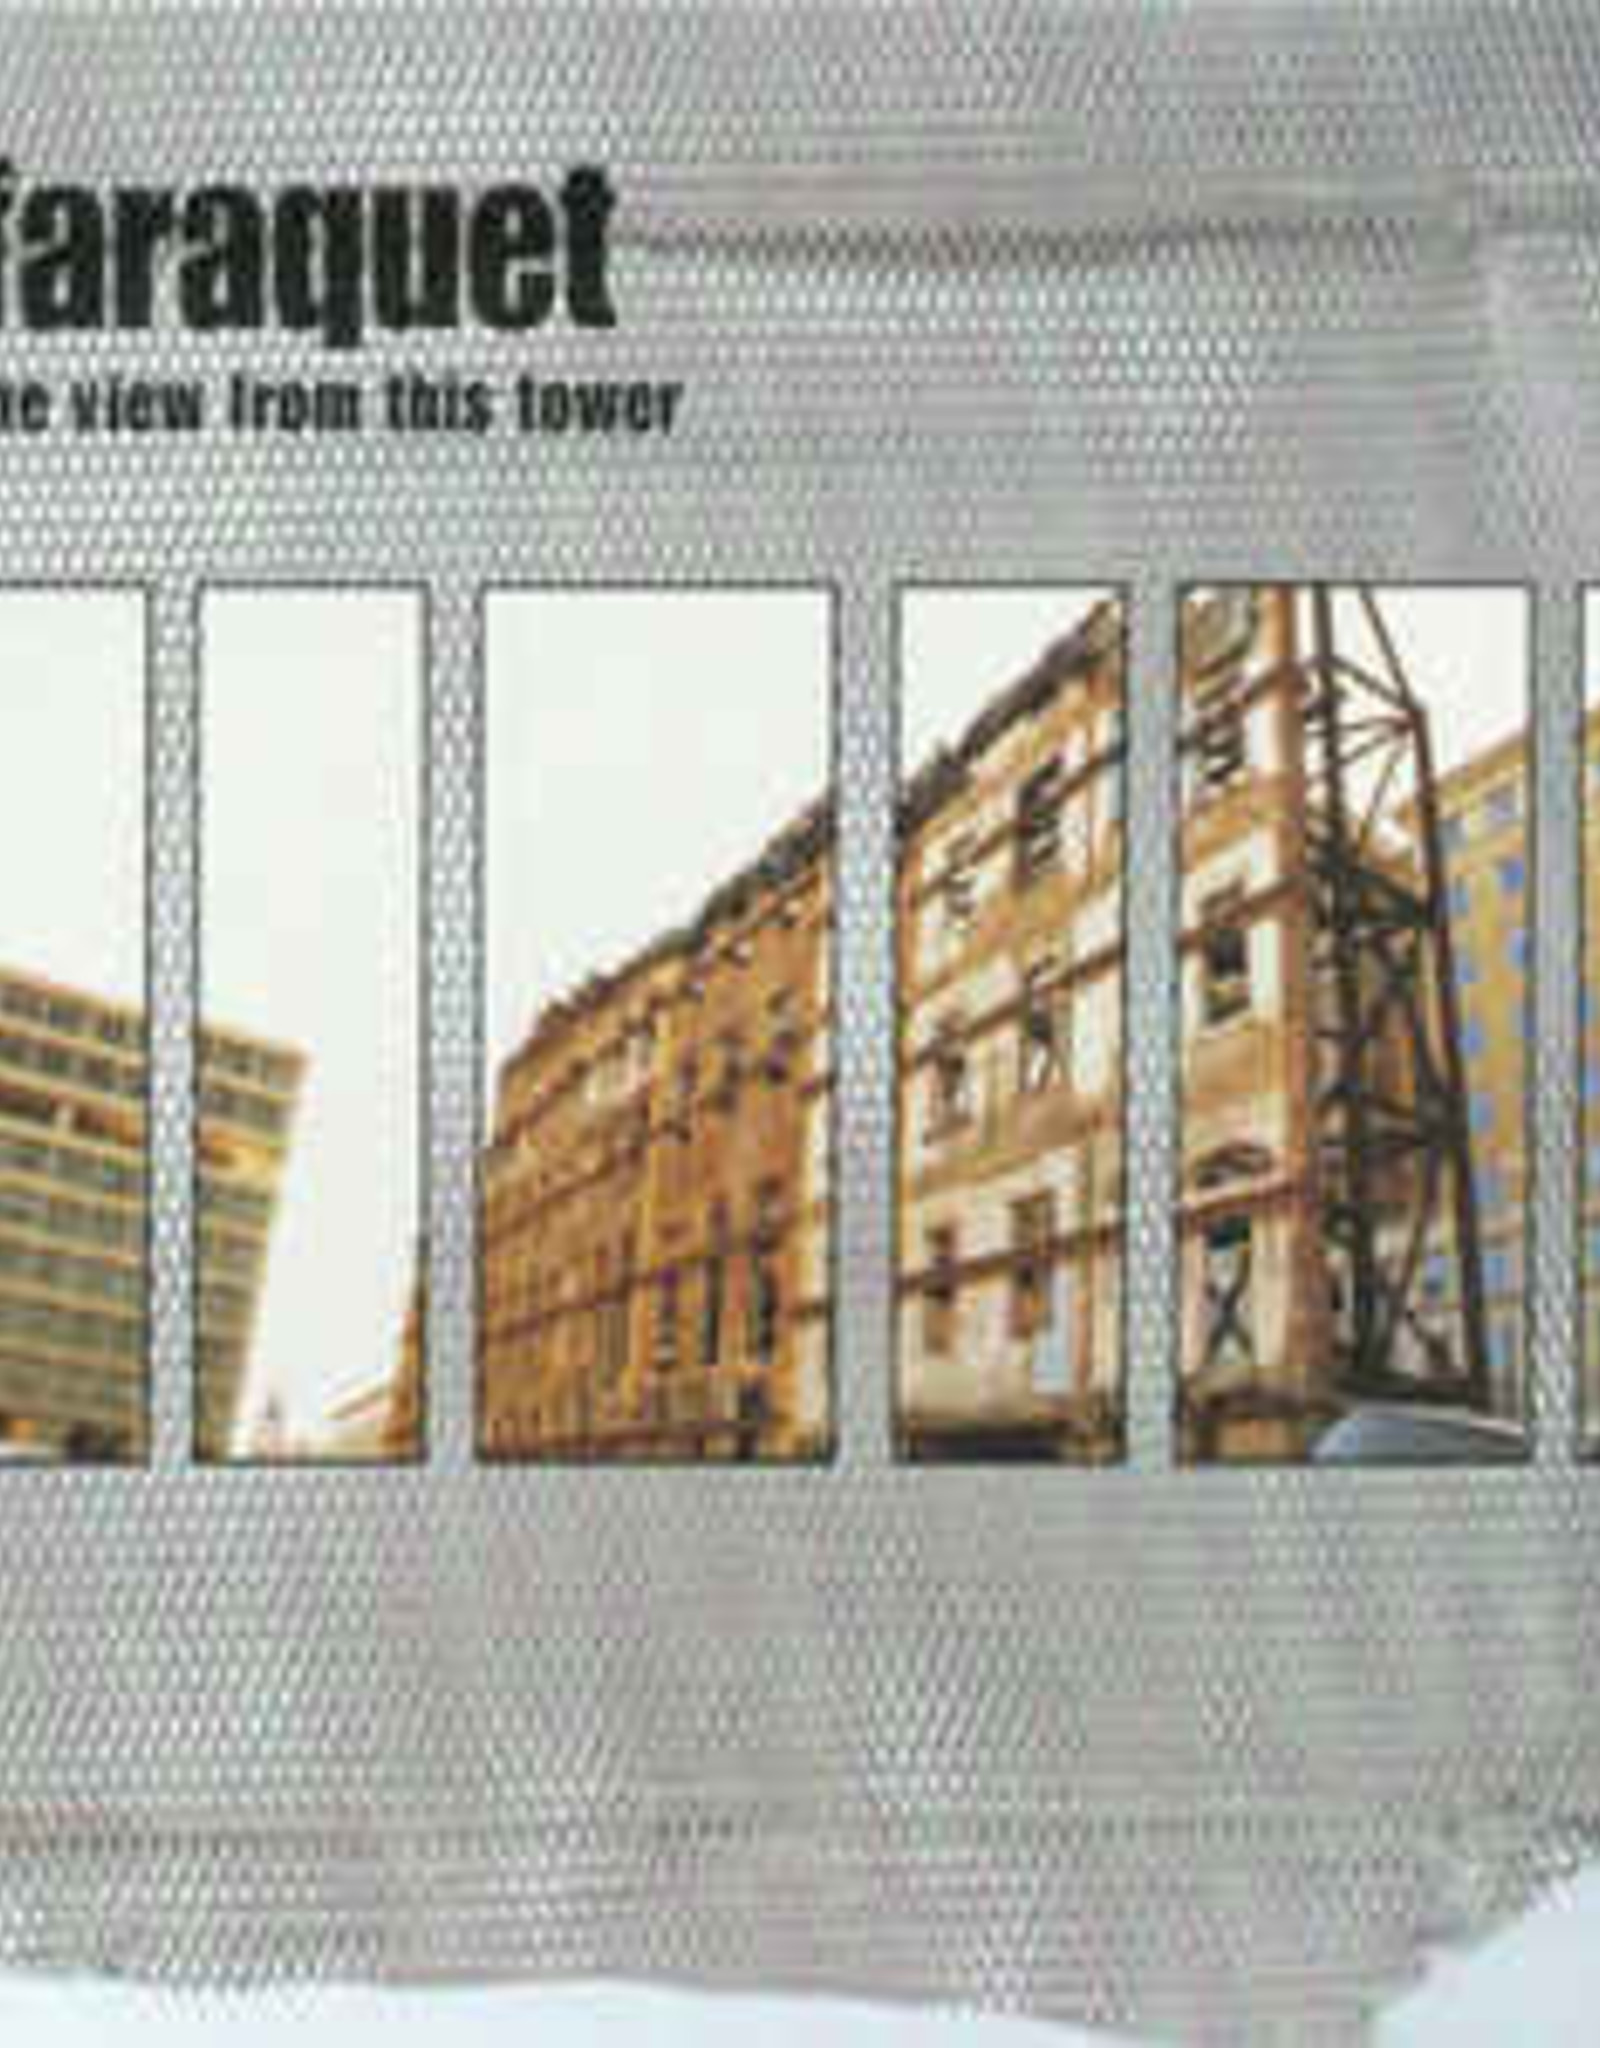 Faraquet  - View From This Tower